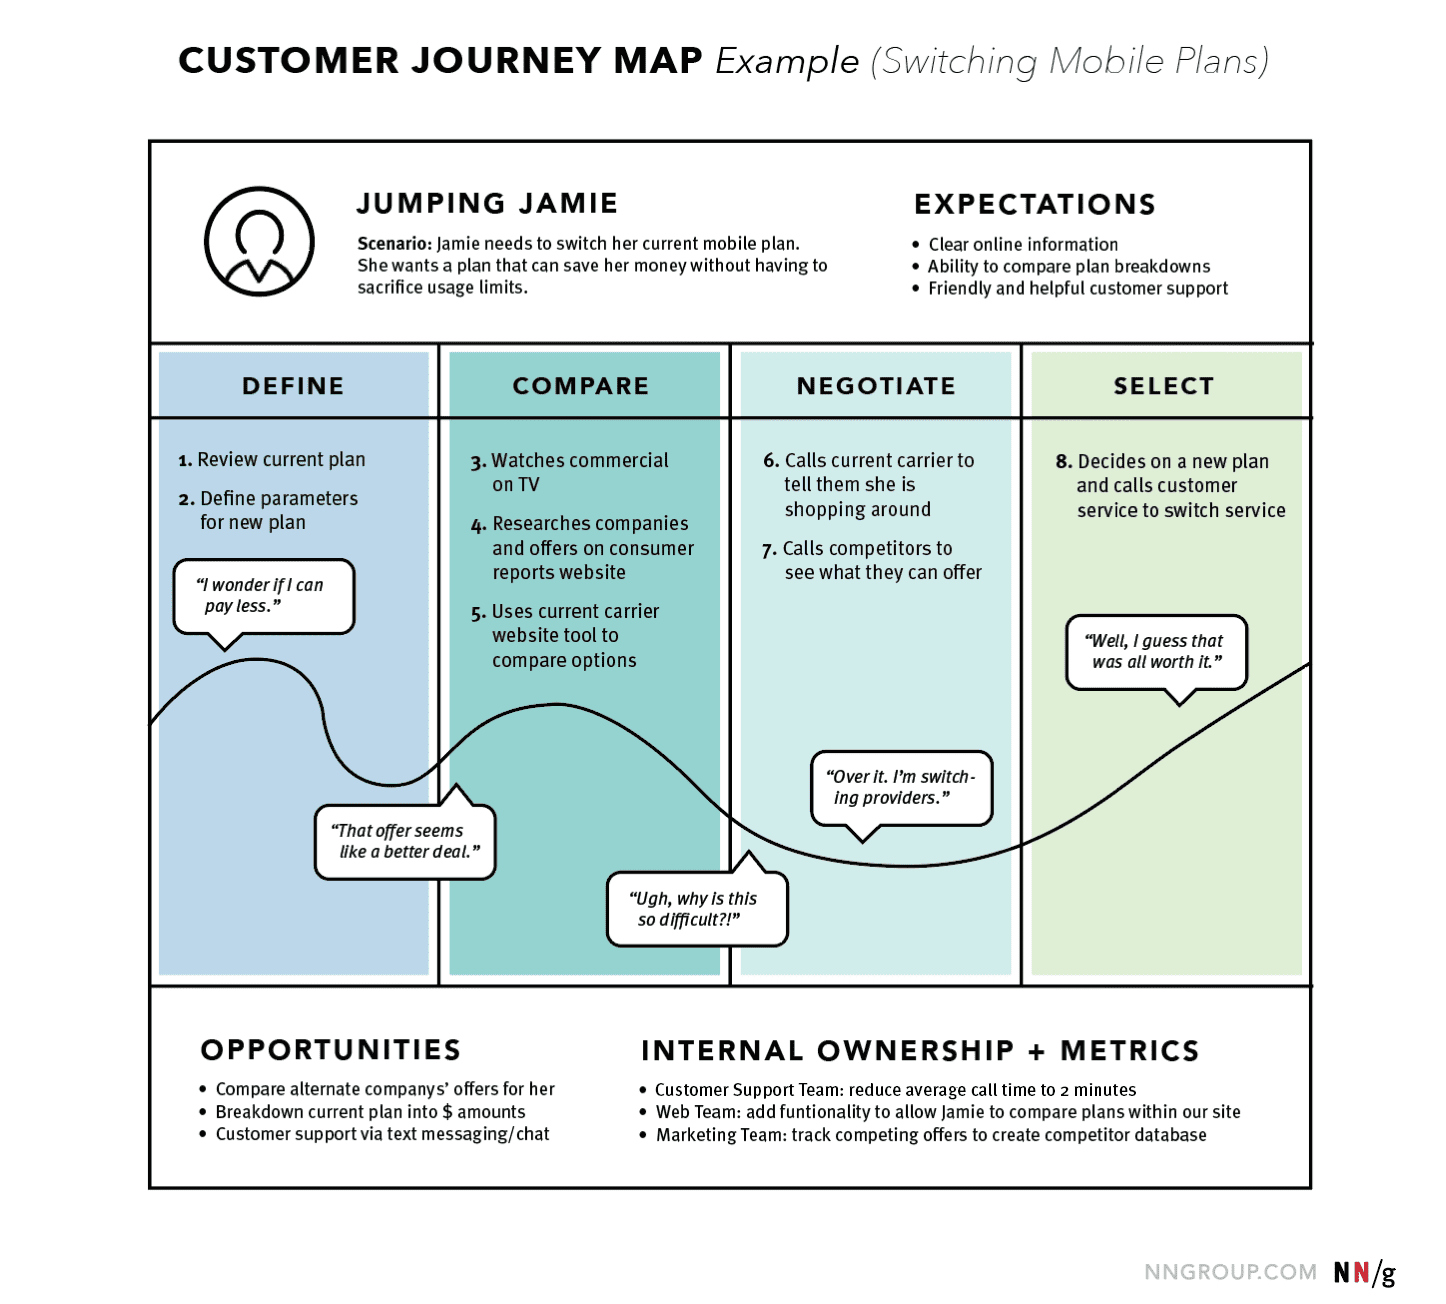 example-of-a-user-journey-map